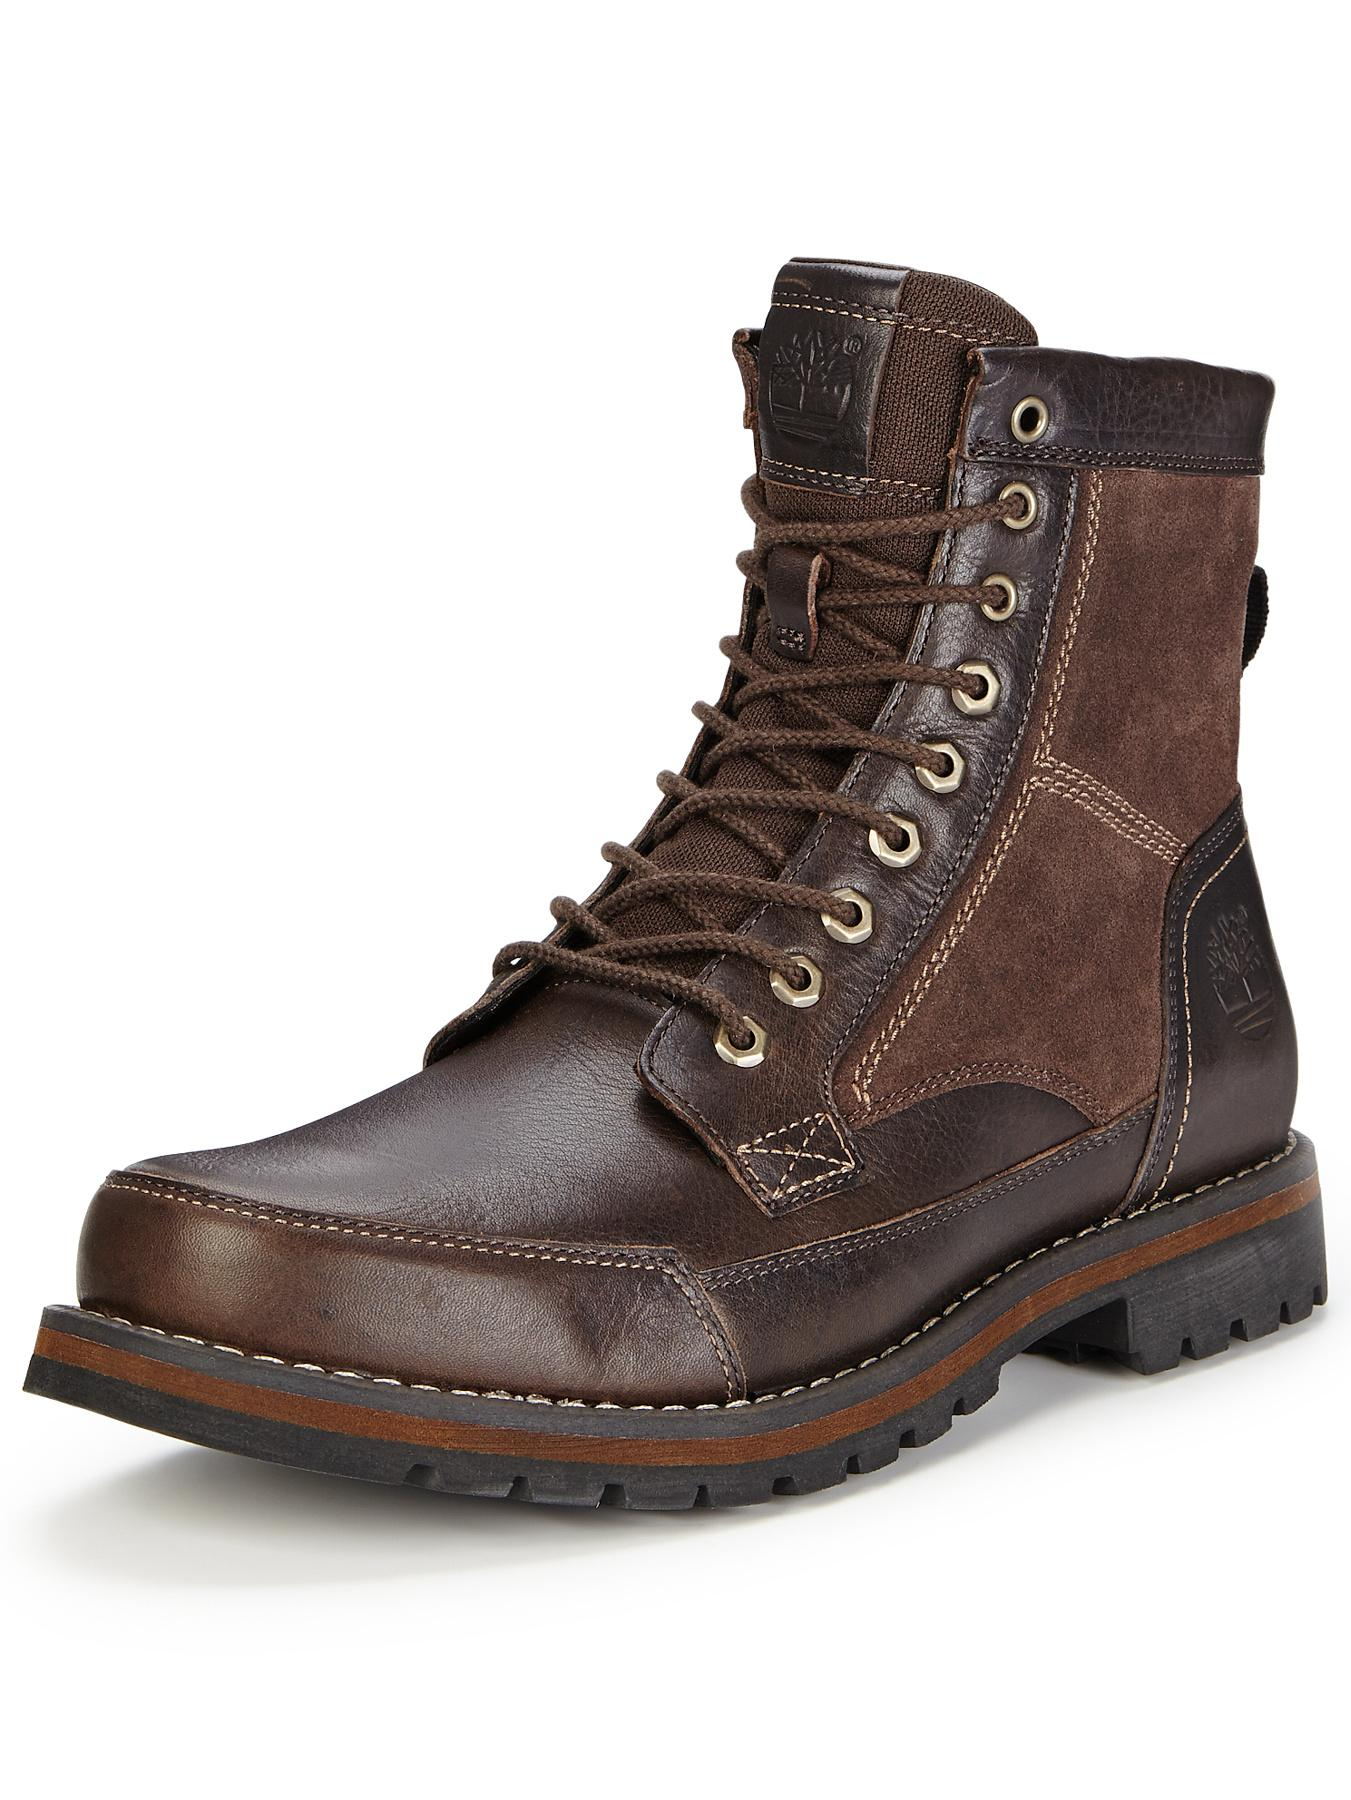 Timberland Larchmont 6 Inch Boots In Brown For Men Dark